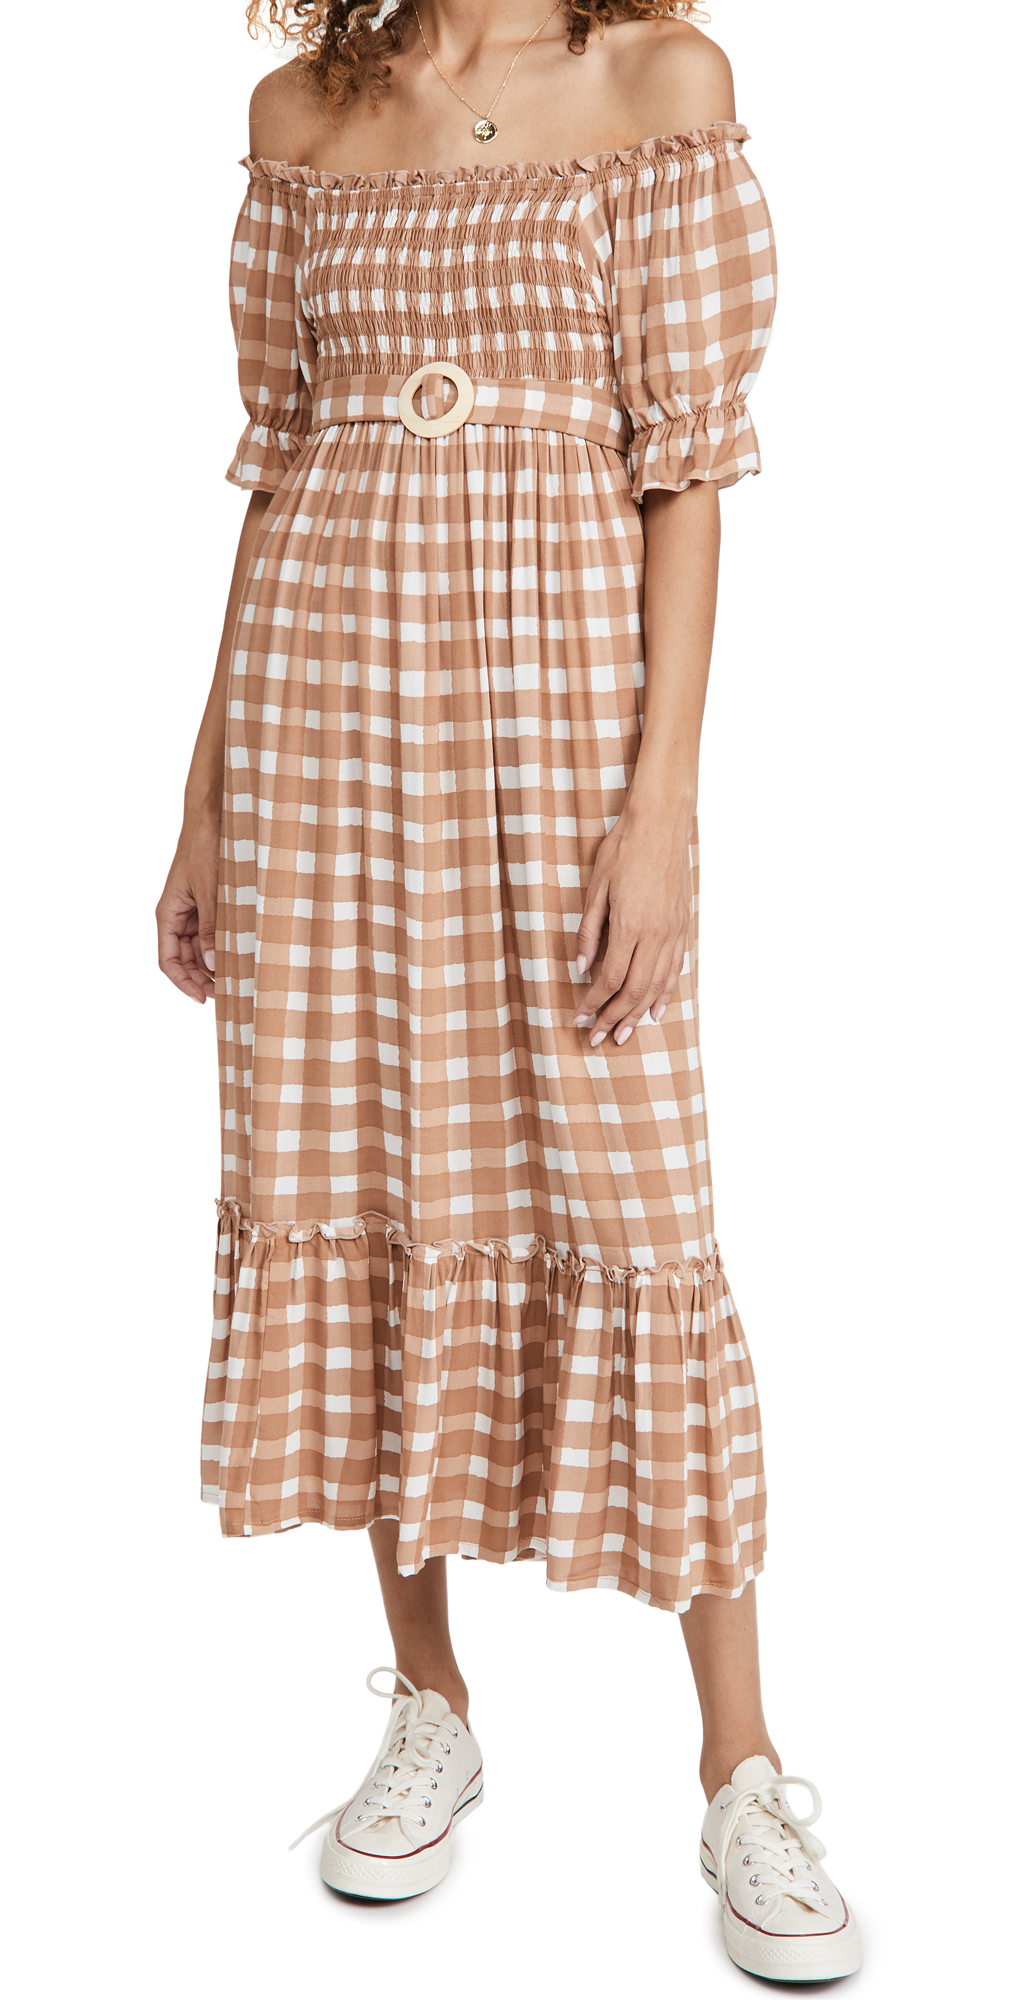 coolchange Adelyn Dress Gingham